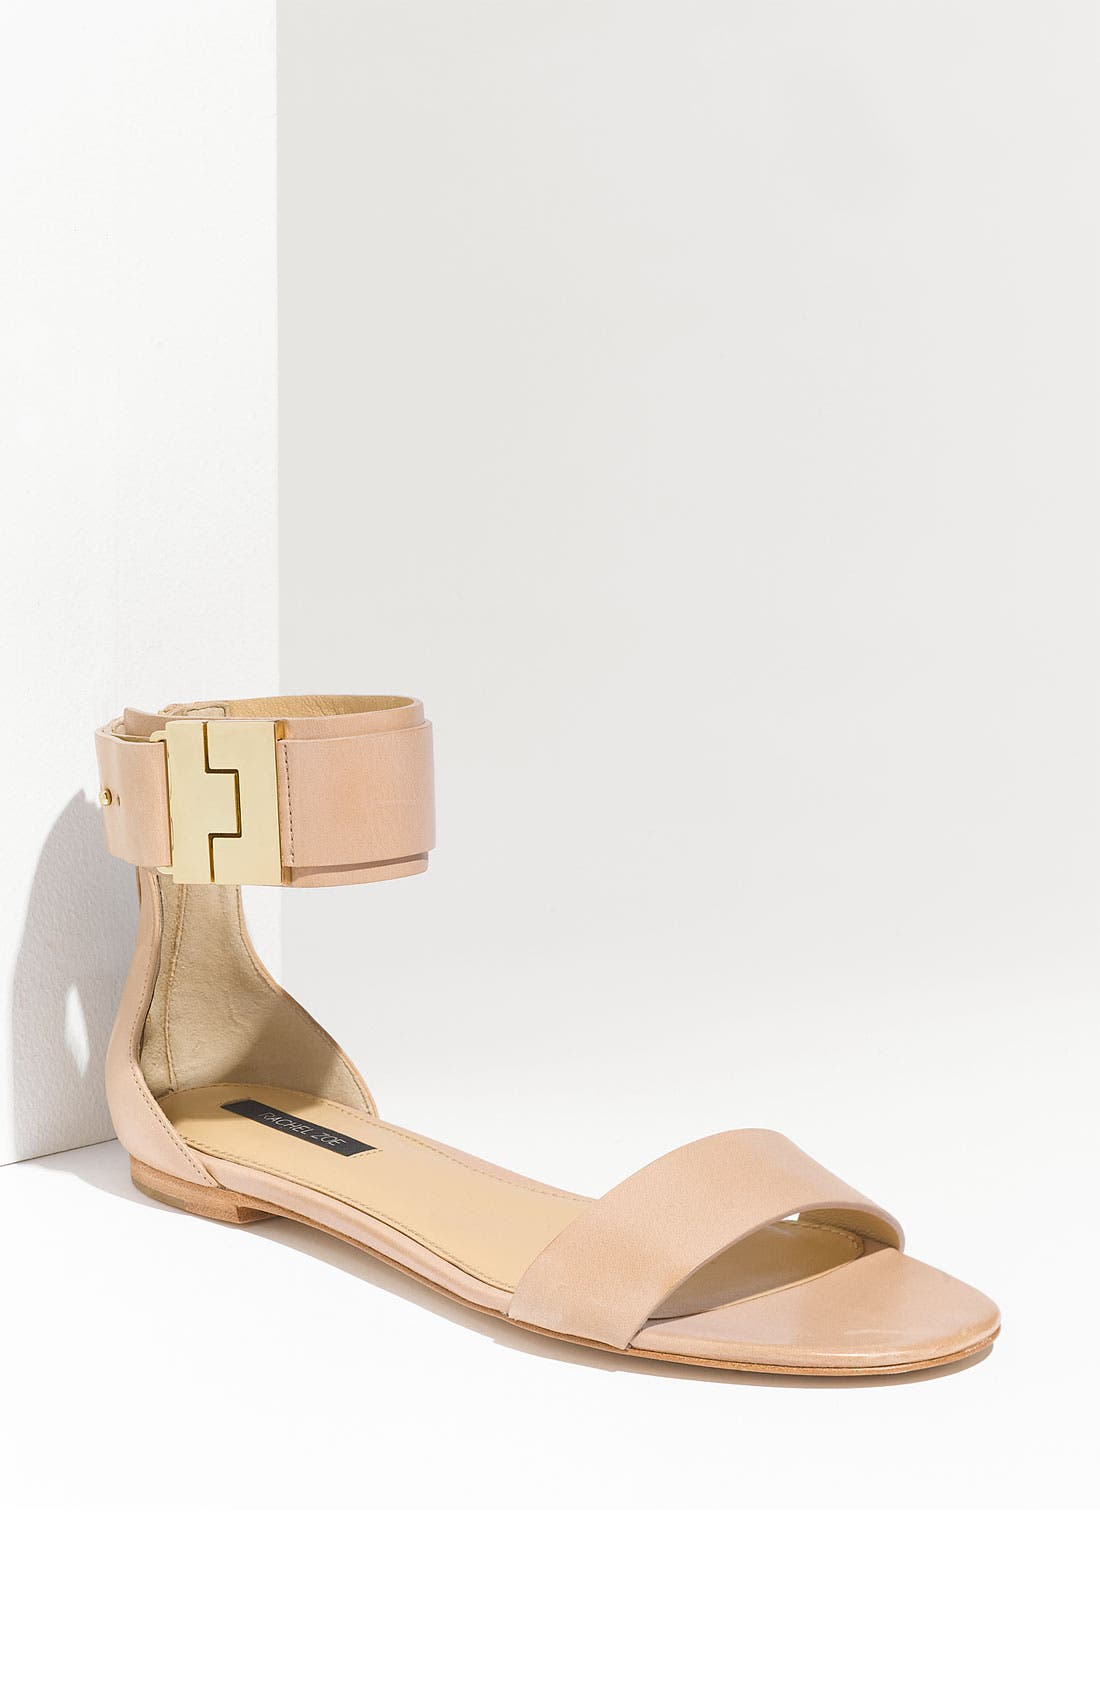 Alternate Image 1 Selected - Rachel Zoe 'Gladys' Flat Sandal